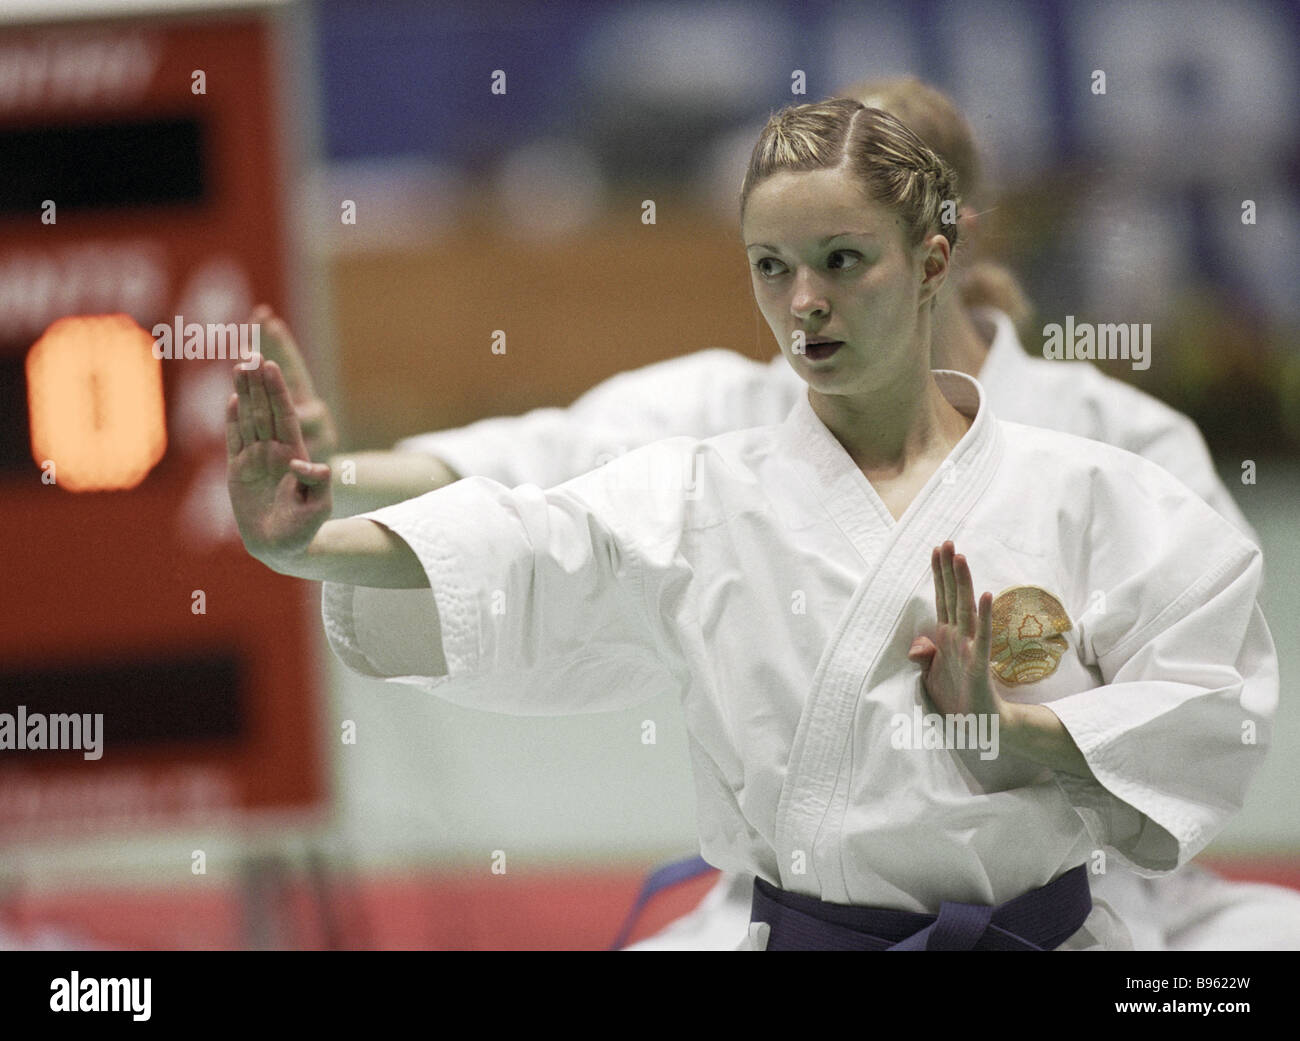 Participant of the Karate European Championship 2004 - Stock Image